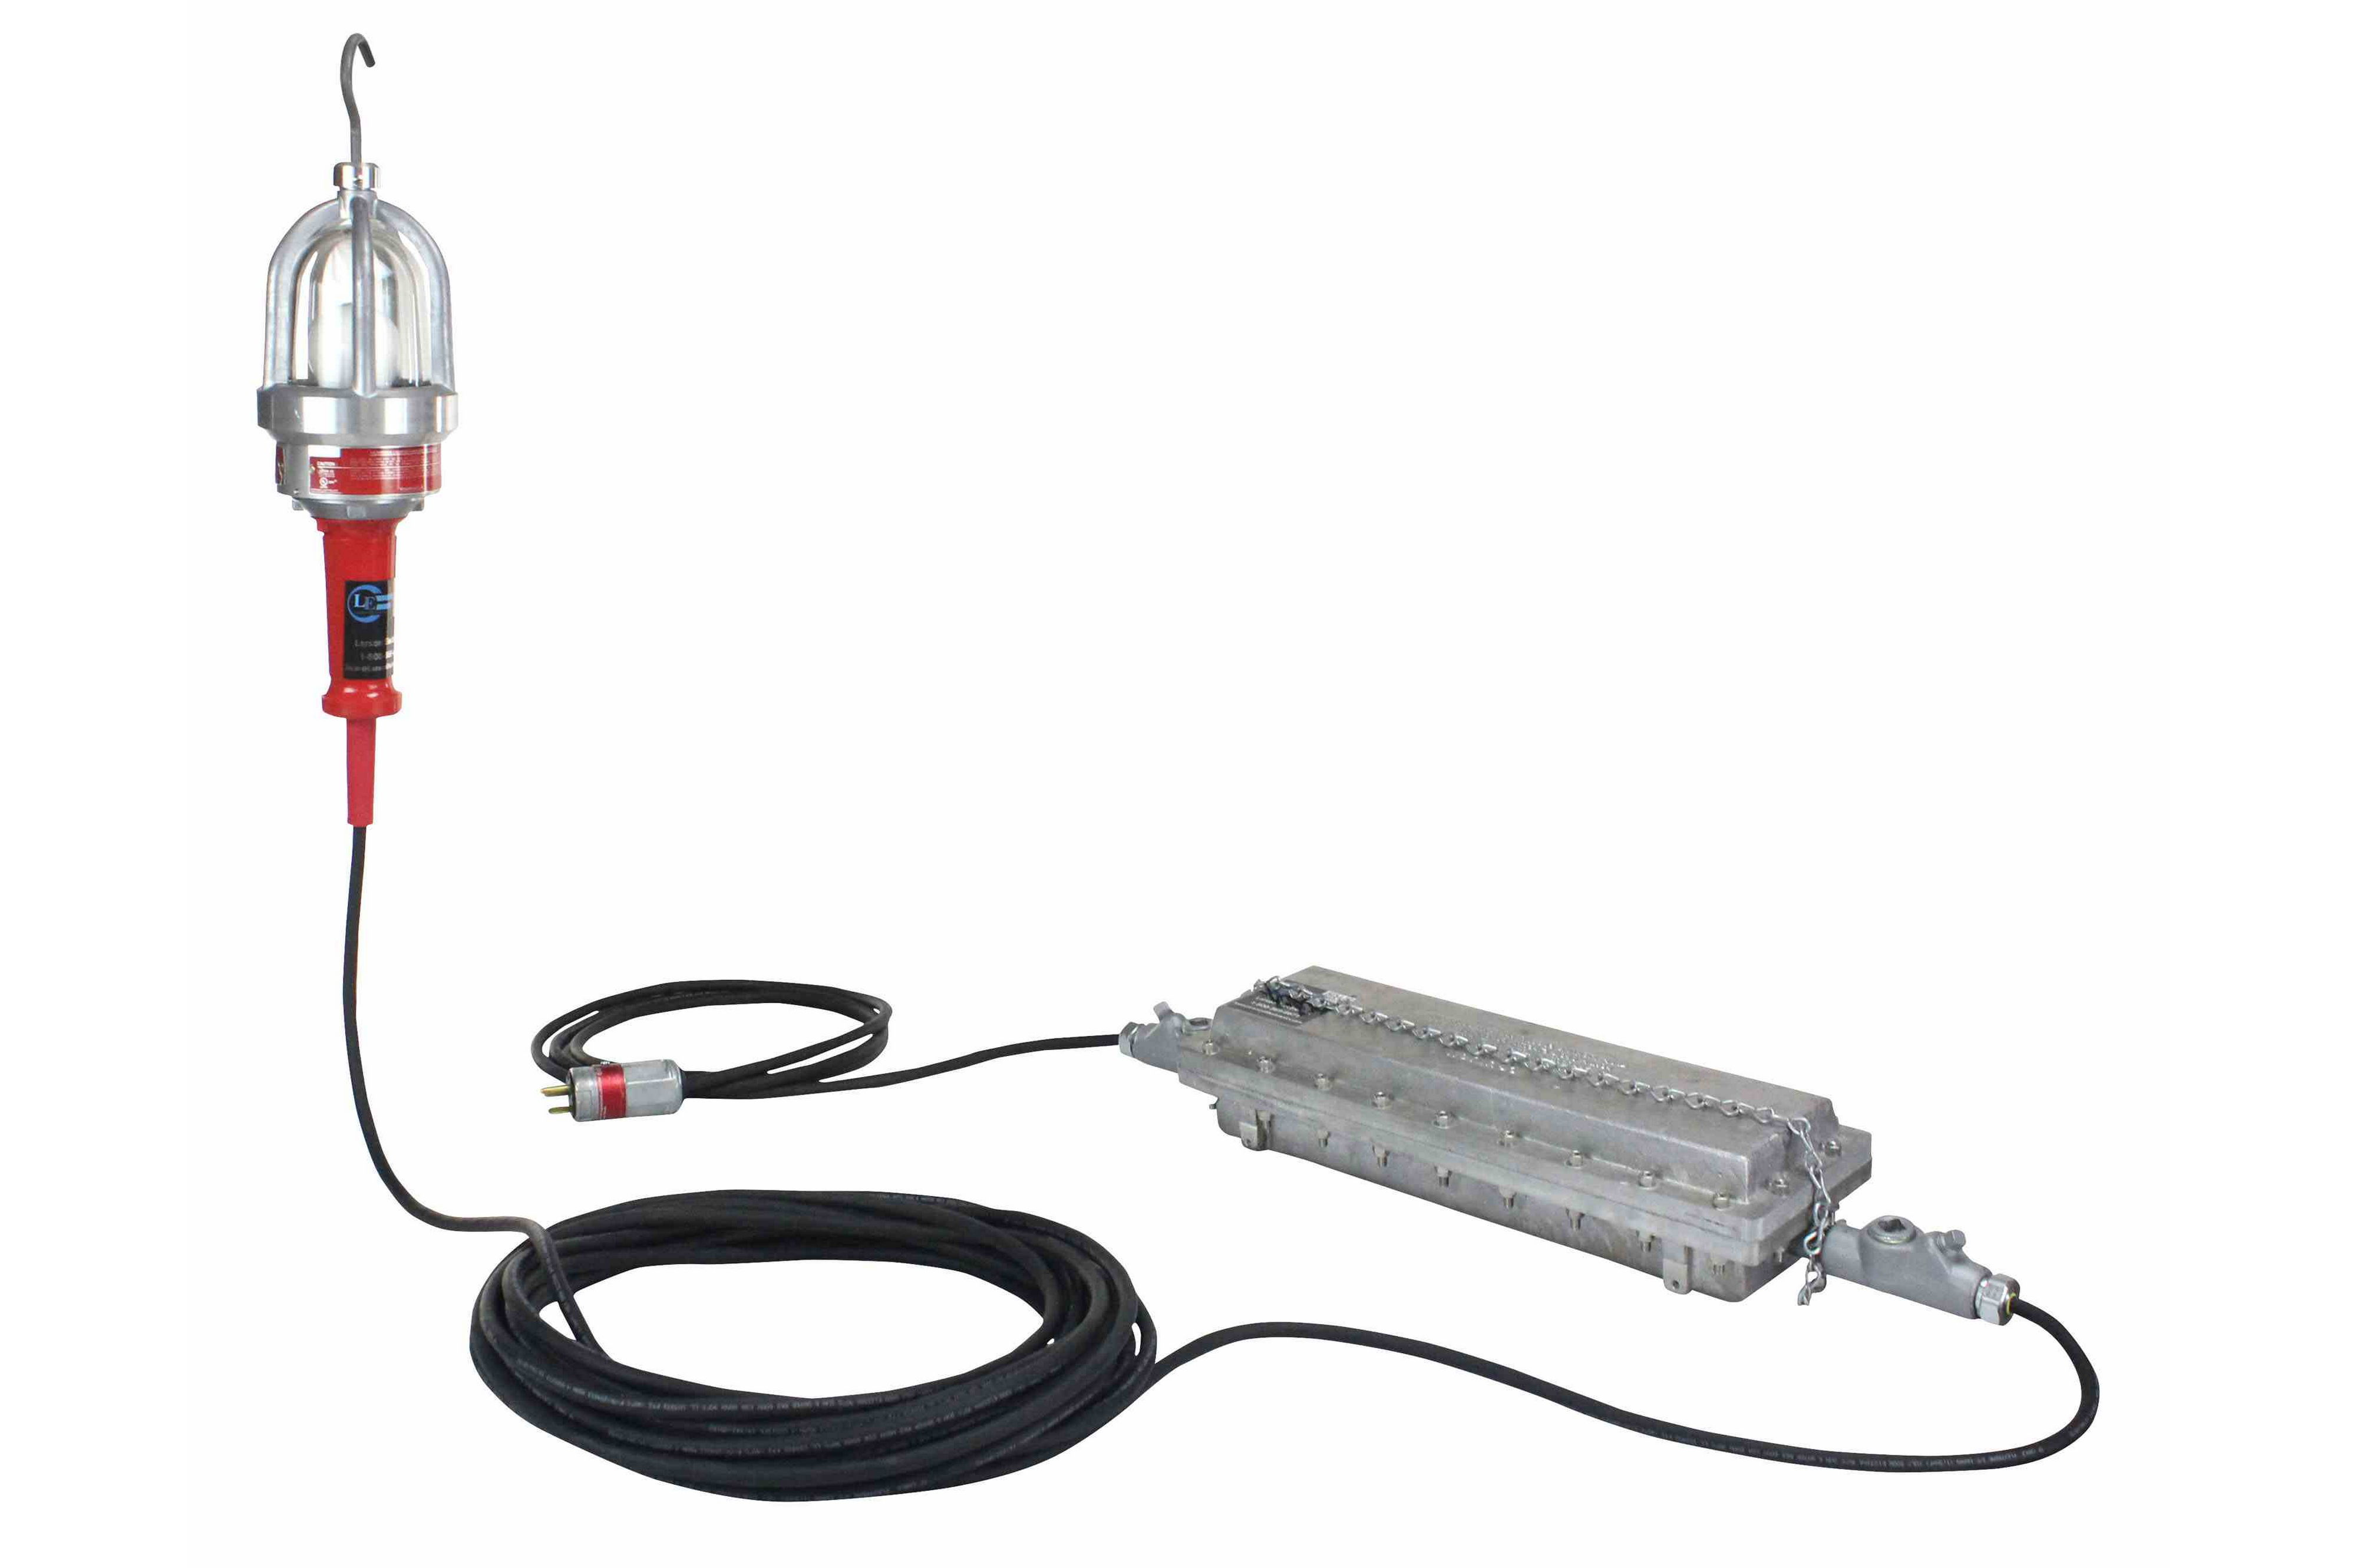 Explosion Proof Drop Light (Hand Lamp) with C1D1 Inline